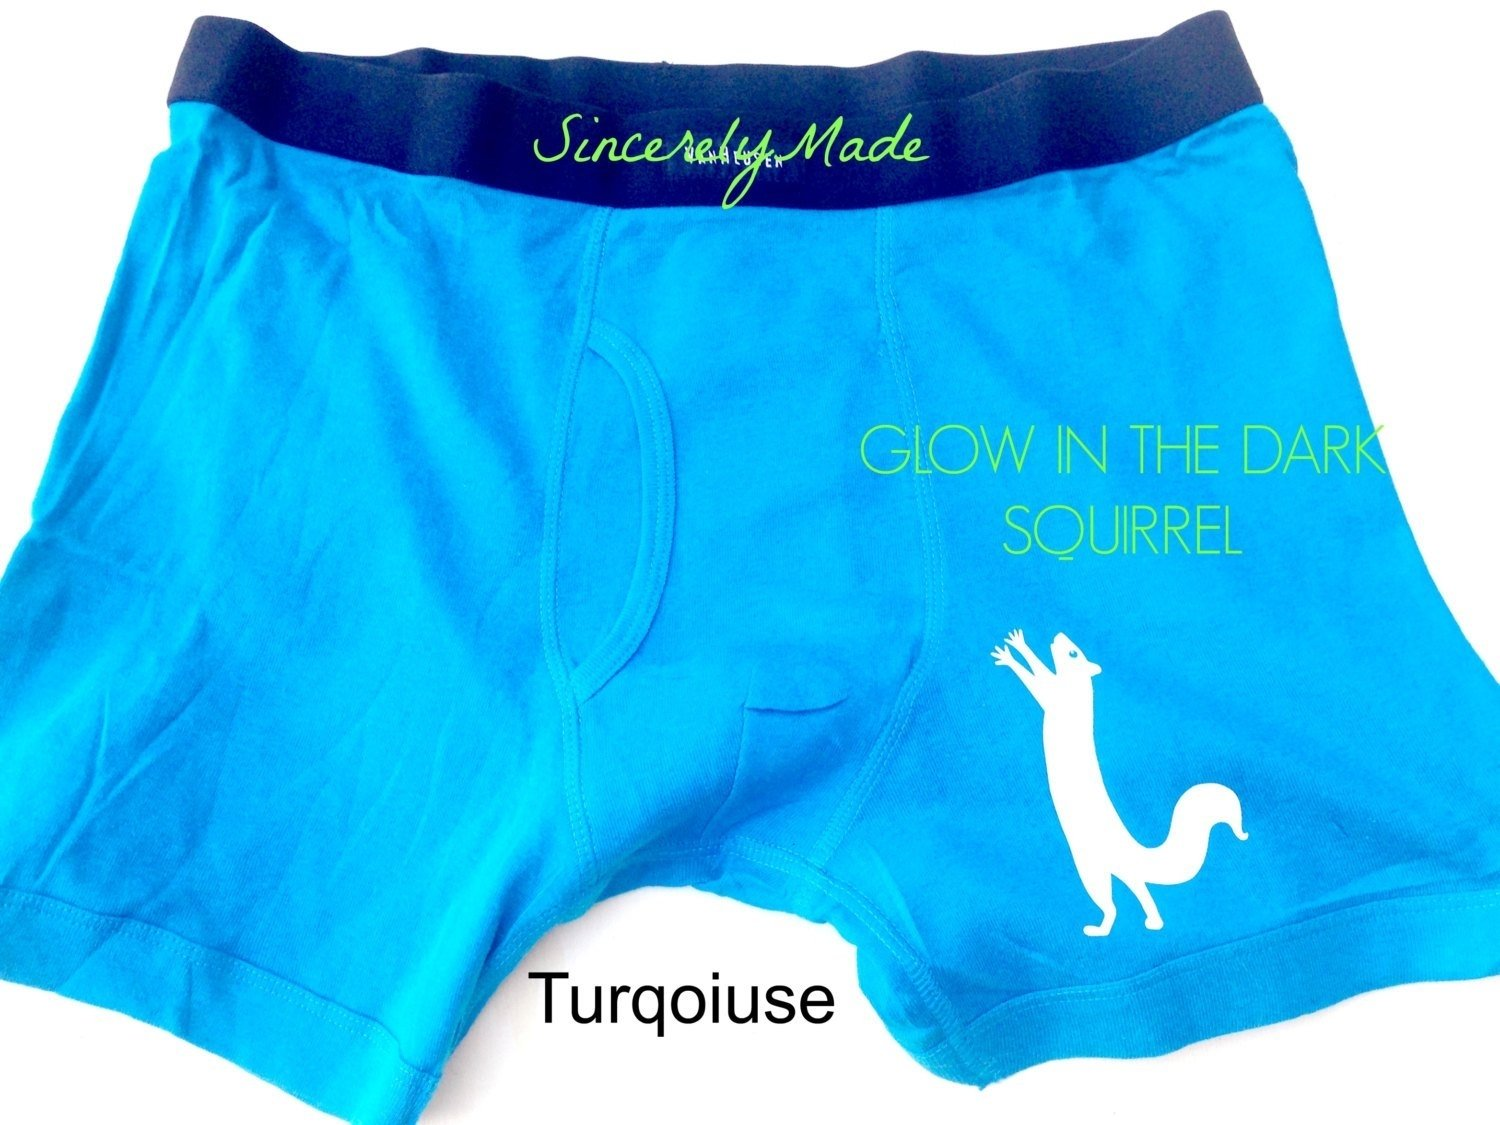 10 Great Funny Gift Ideas For Men funny gifts for men squirrel boxers glow in the dark gifts 2020